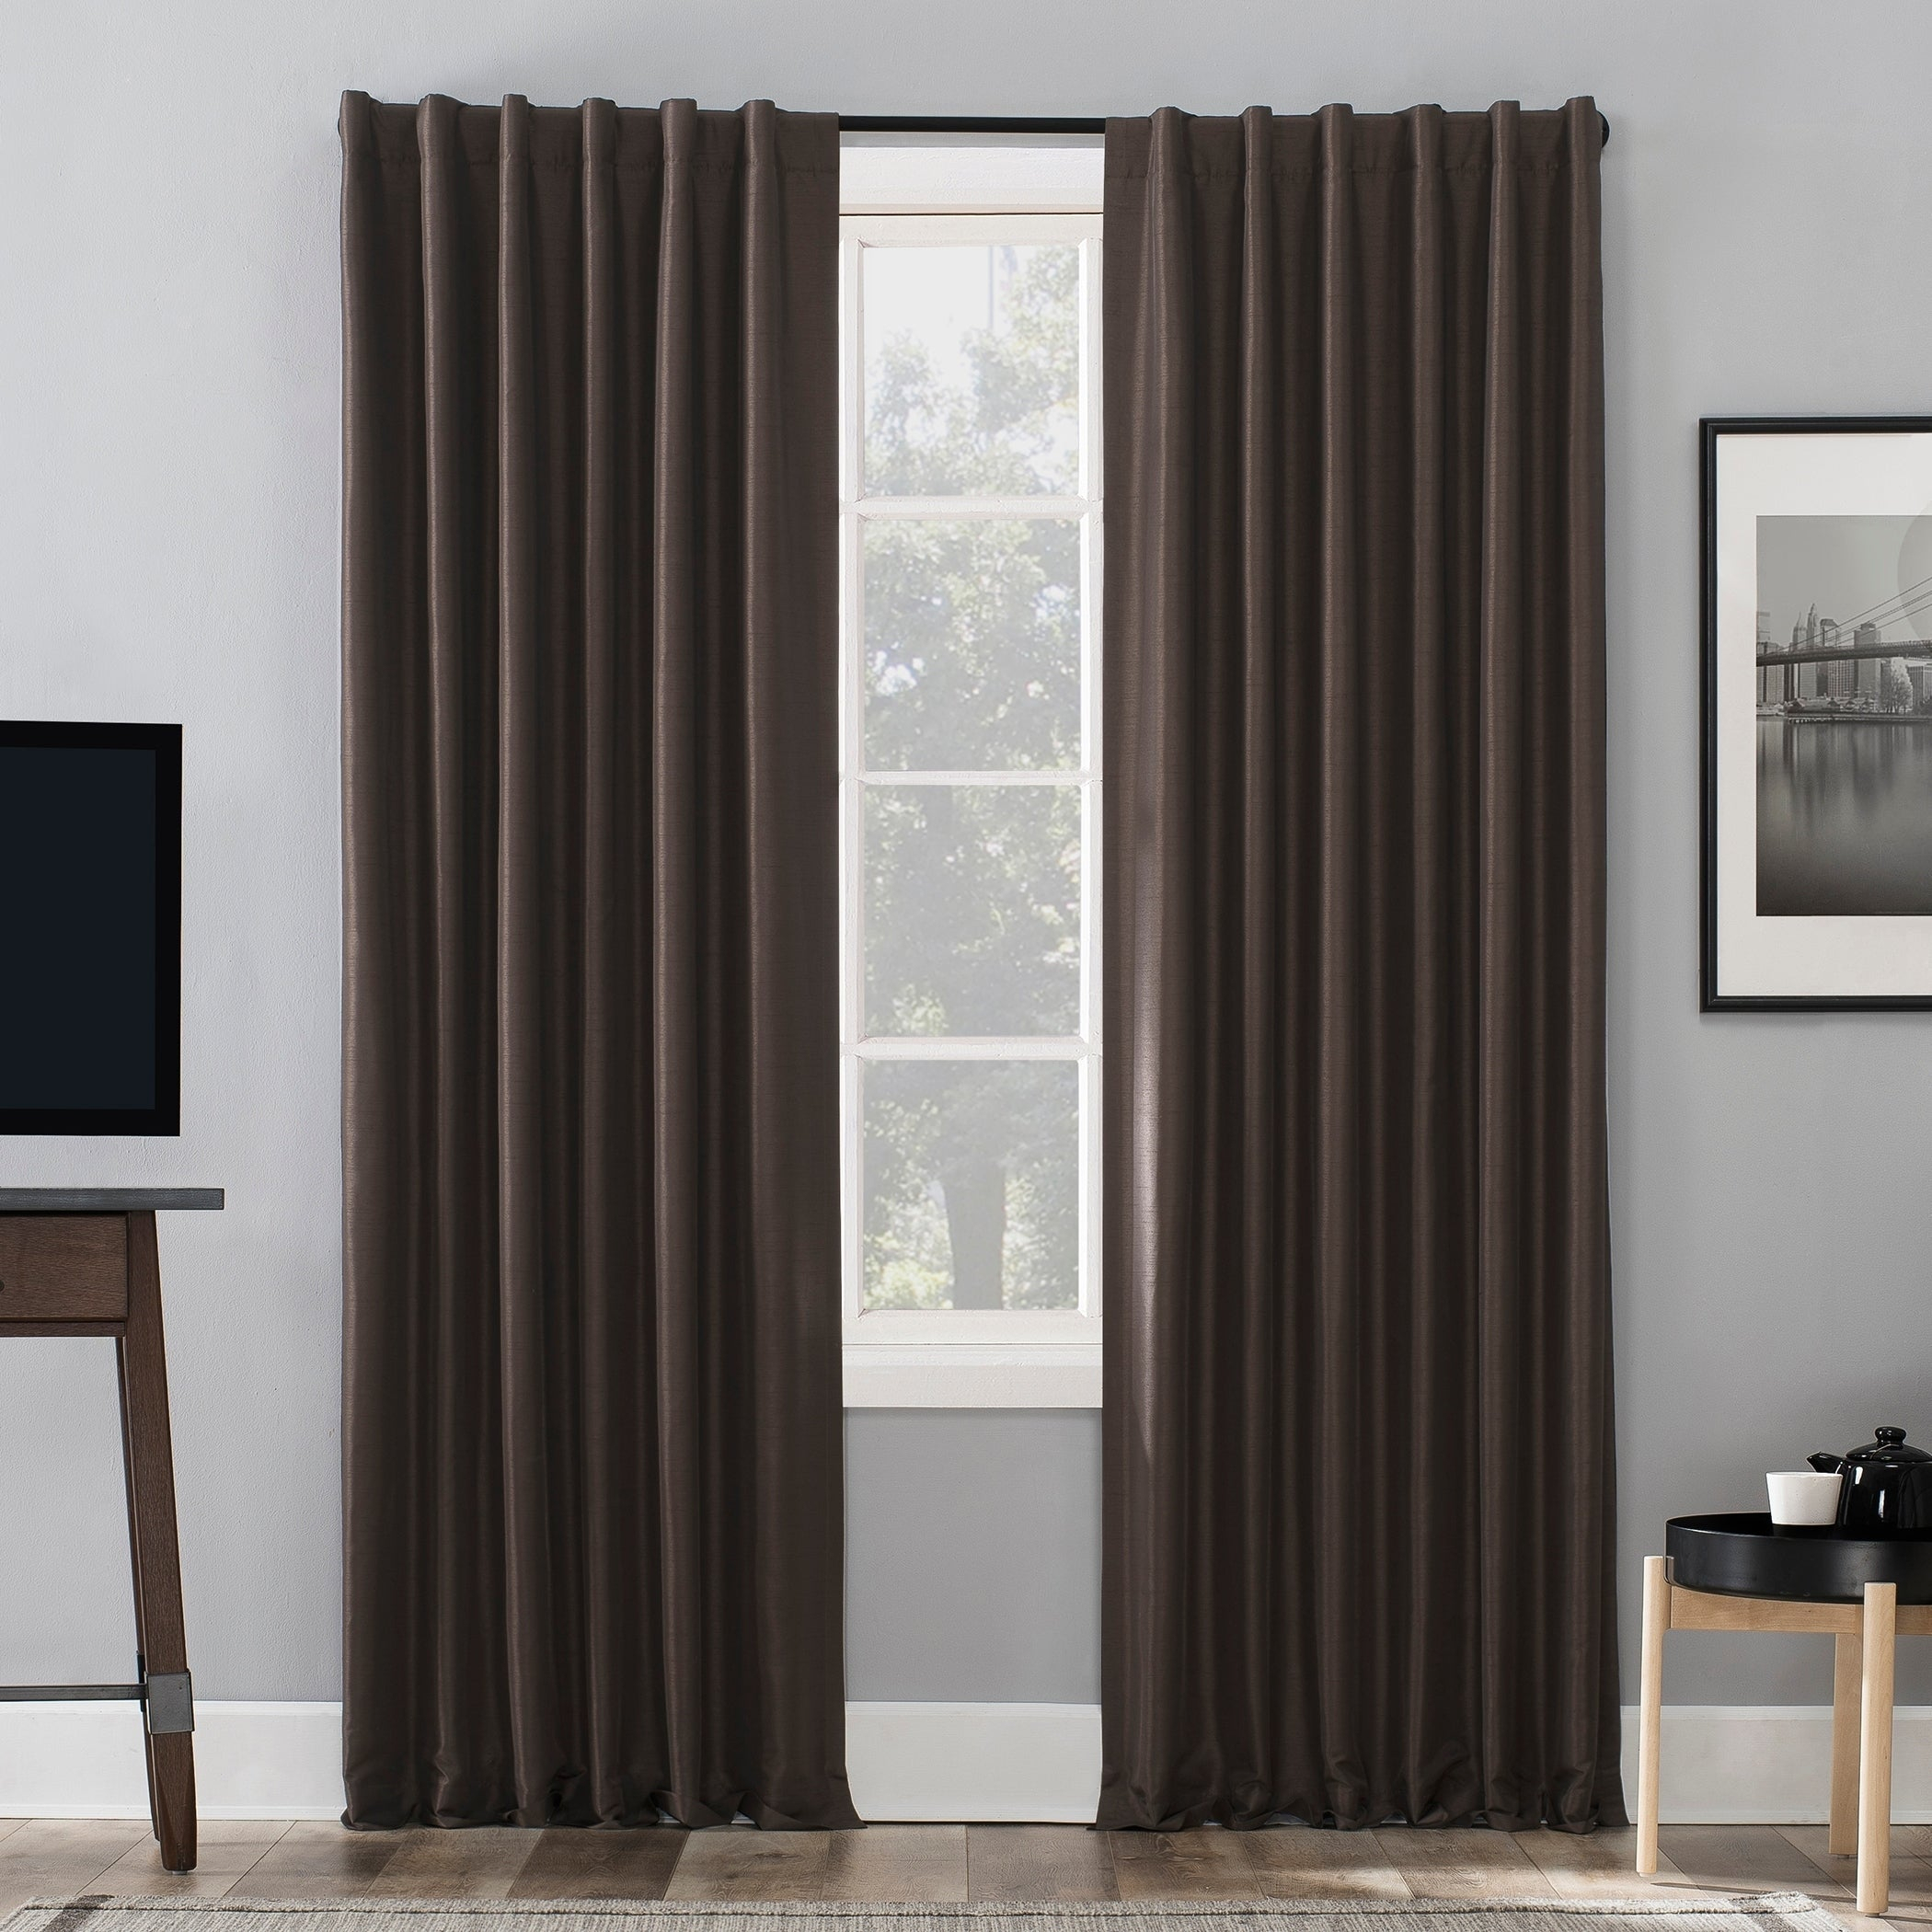 Sun Zero Evelina Faux Dupioni Silk Extreme 100% Blackout Back Tab Curtain Panel Within Evelina Faux Dupioni Silk Extreme Blackout Back Tab Curtain Panels (View 2 of 20)